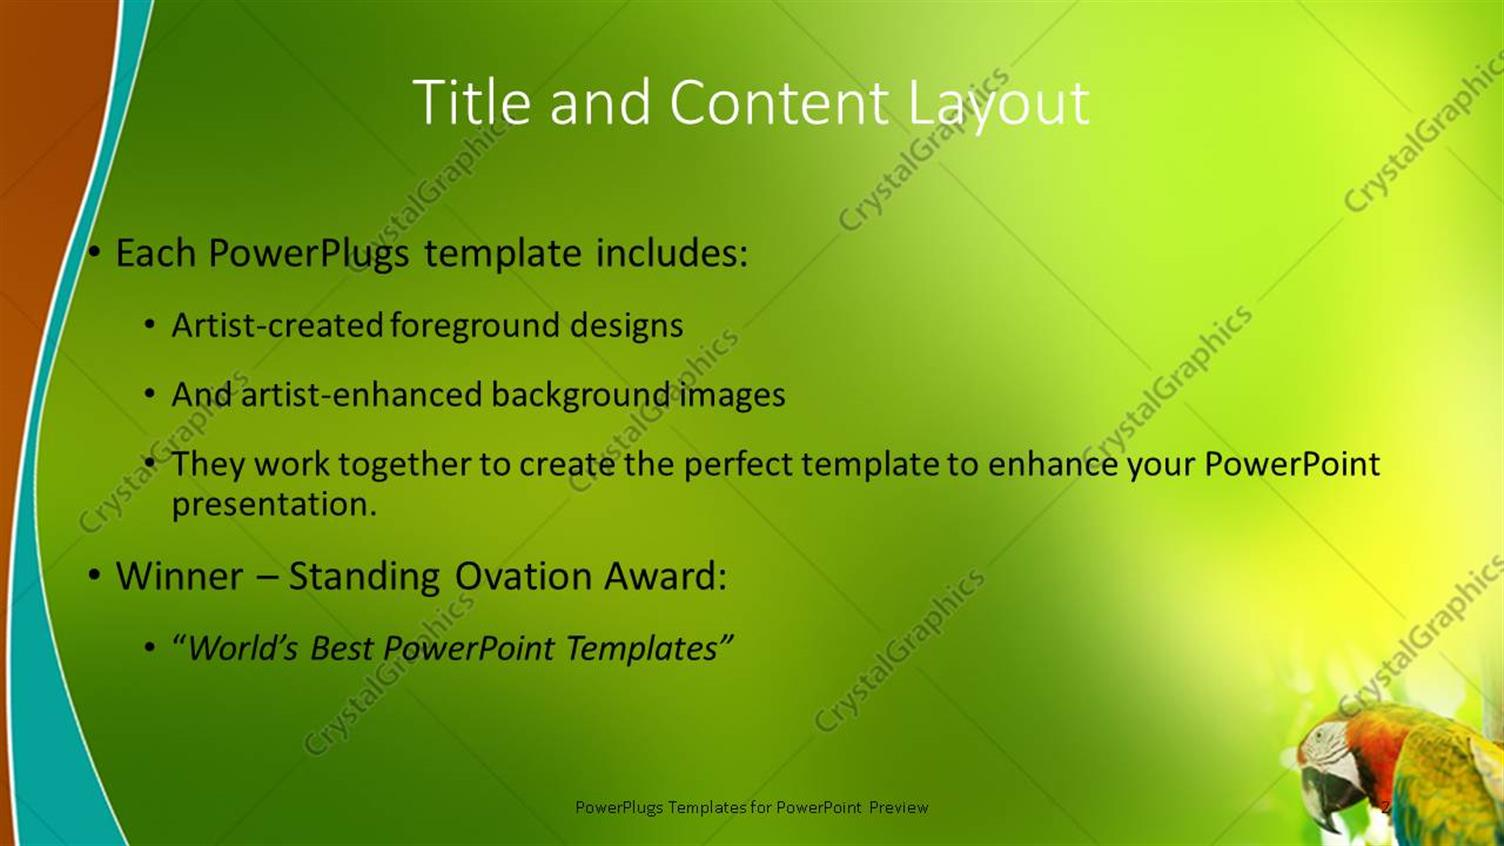 powerpoint template close up of colorful parrot over blurry